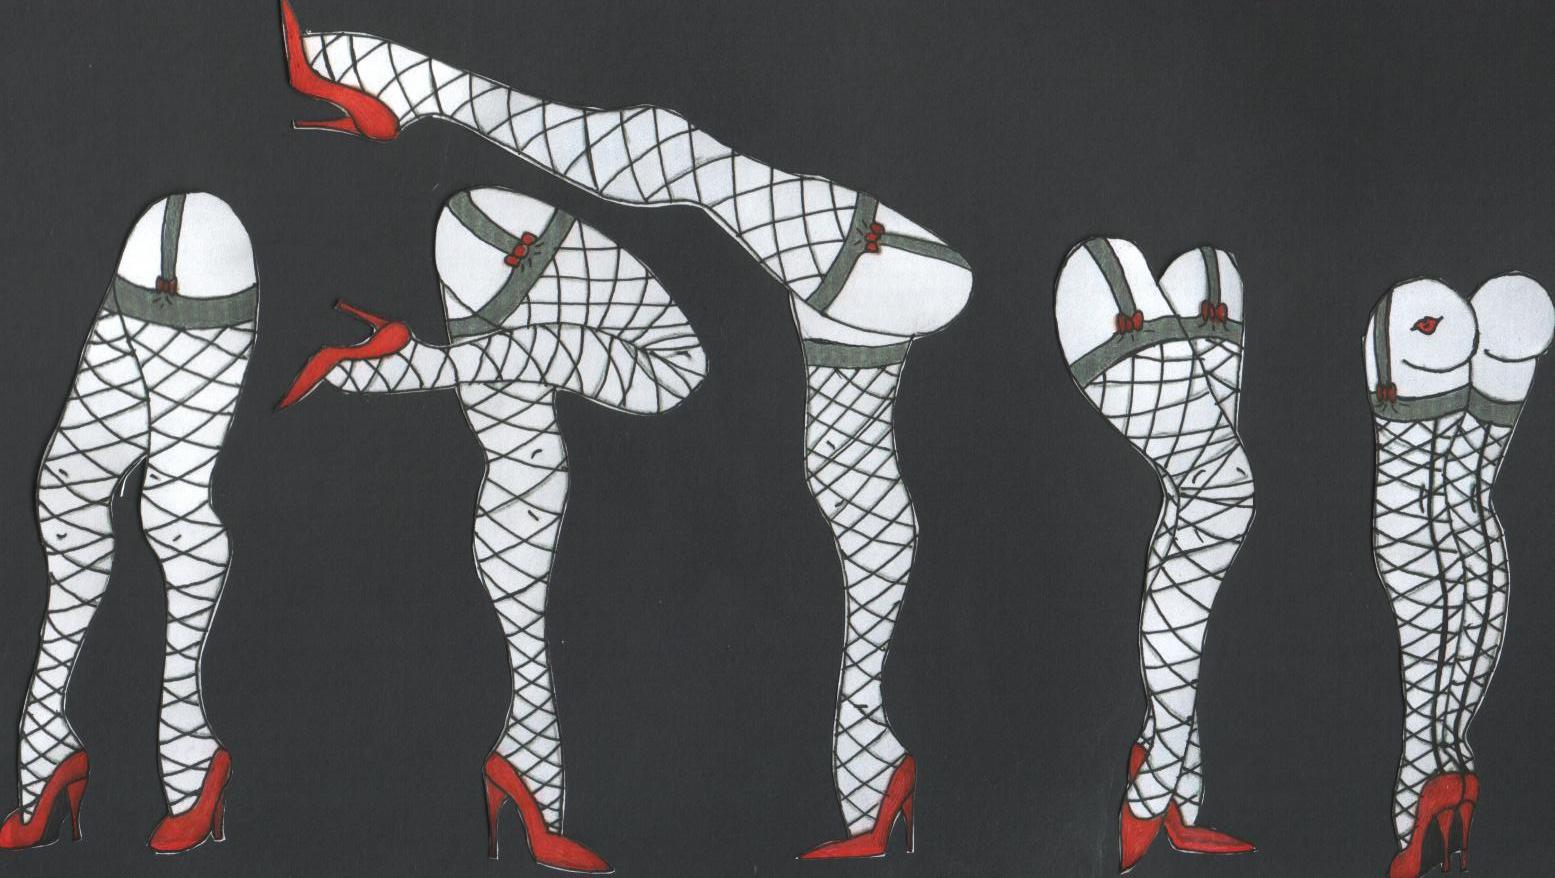 Free Download Rocky Horror Legs By Purrplecatt 1555x878 For Your